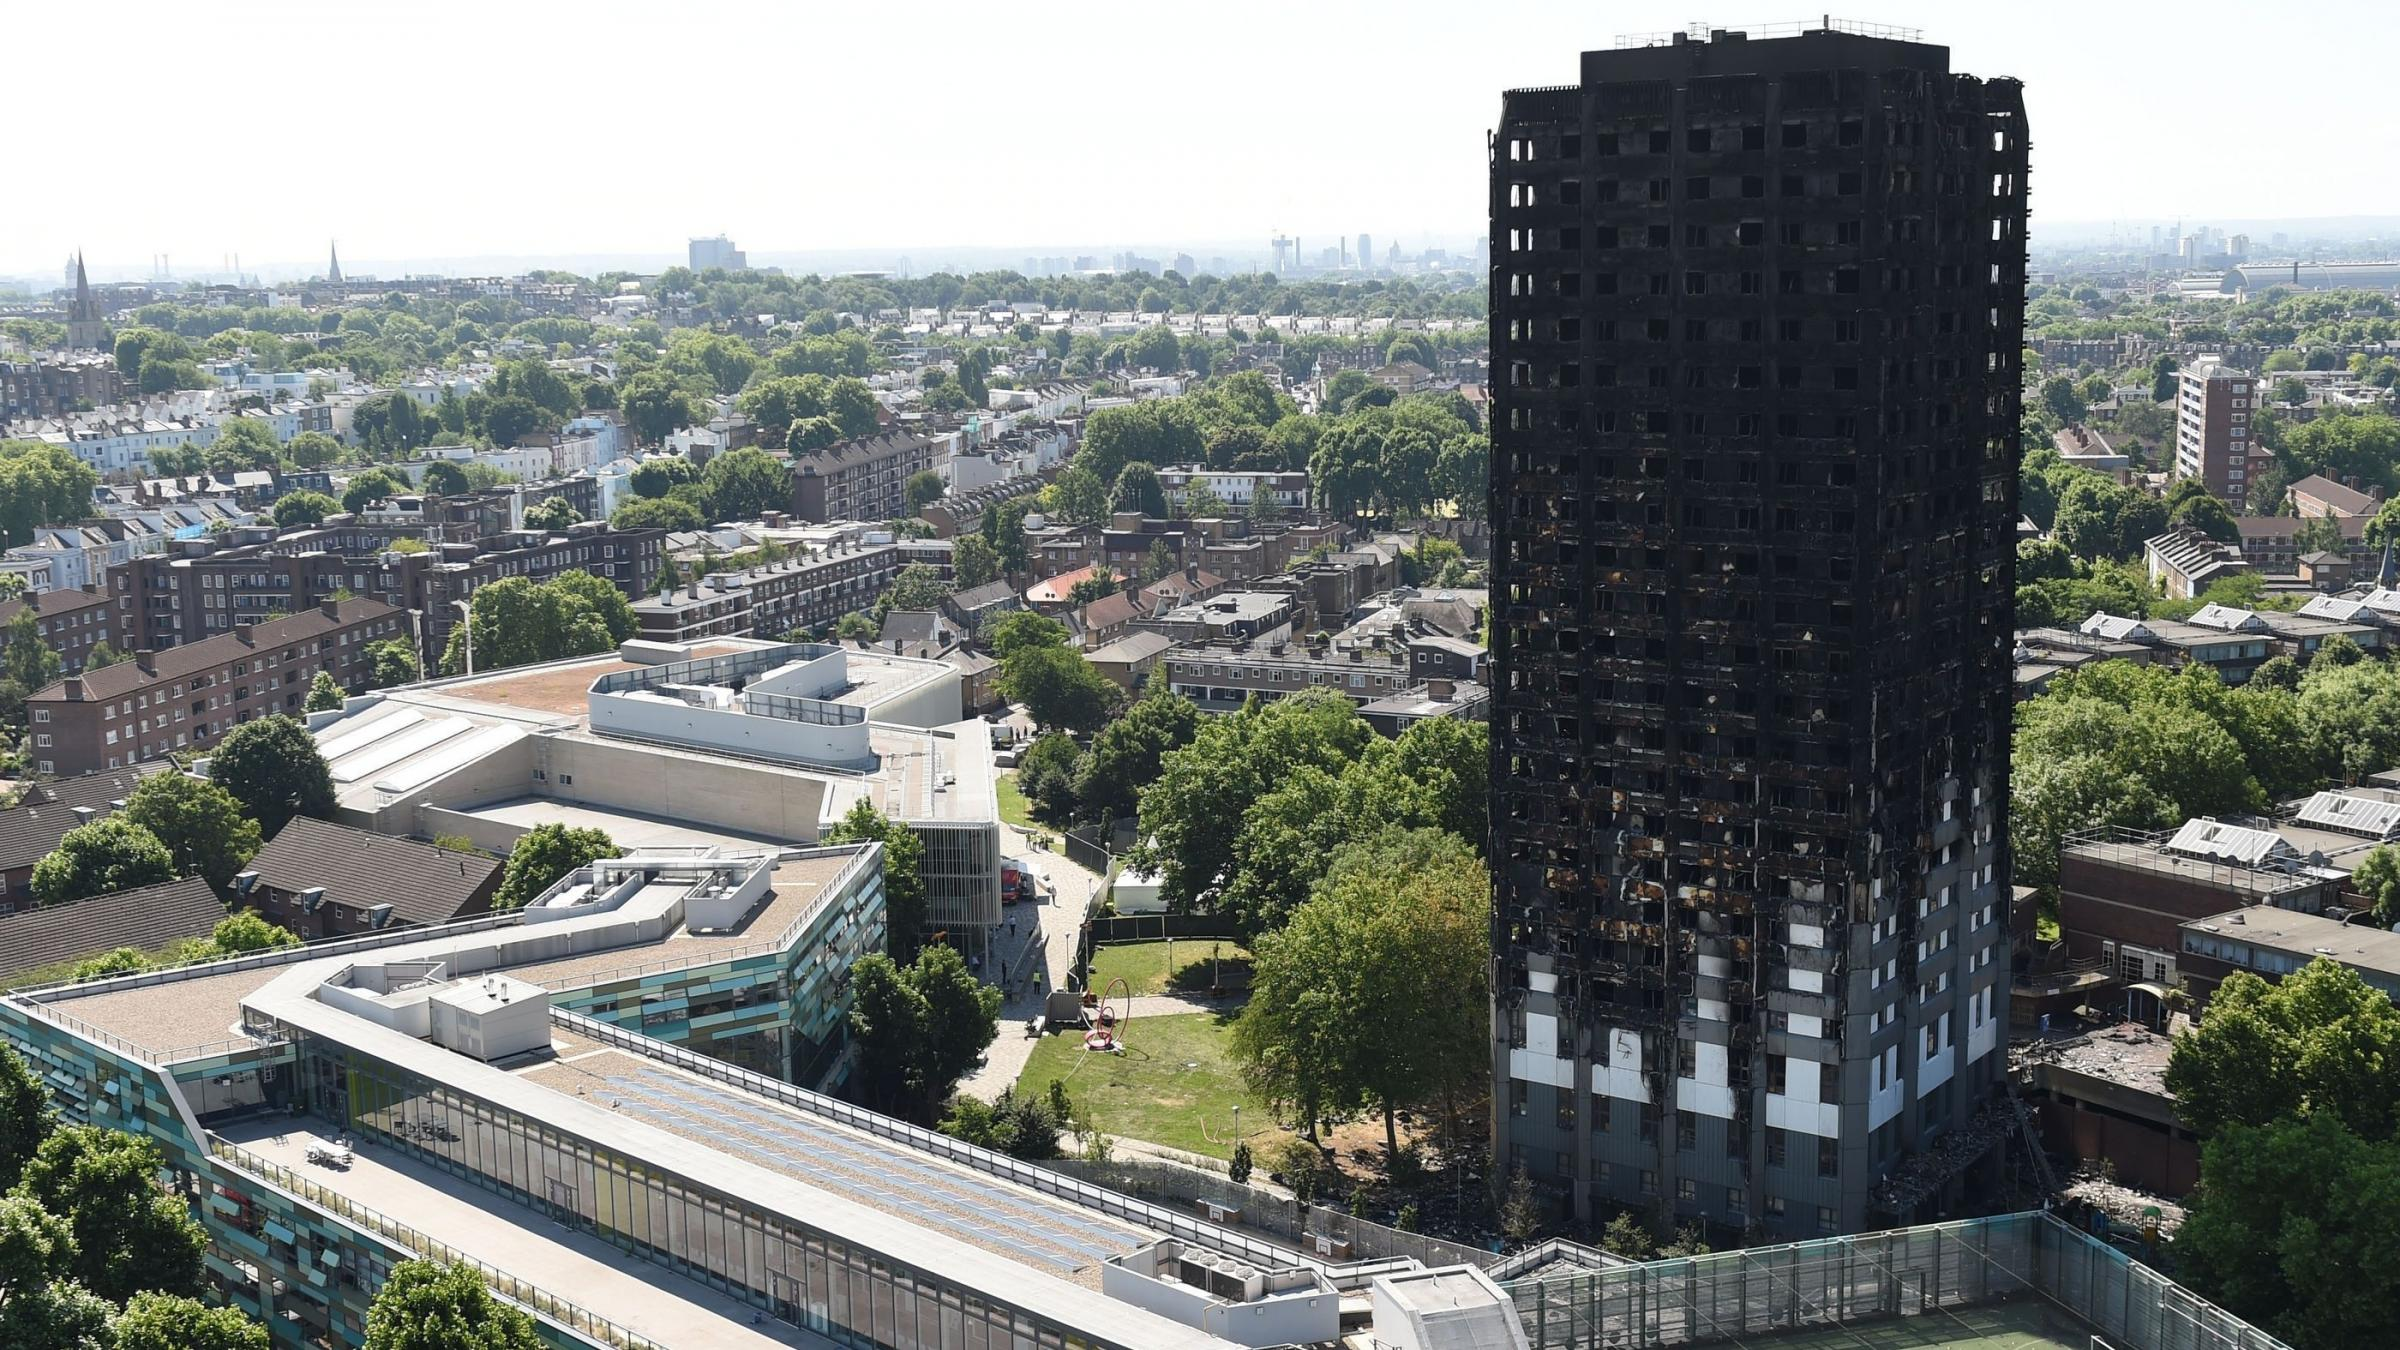 Harrowing footage from the inside of Grenfell Tower has been released